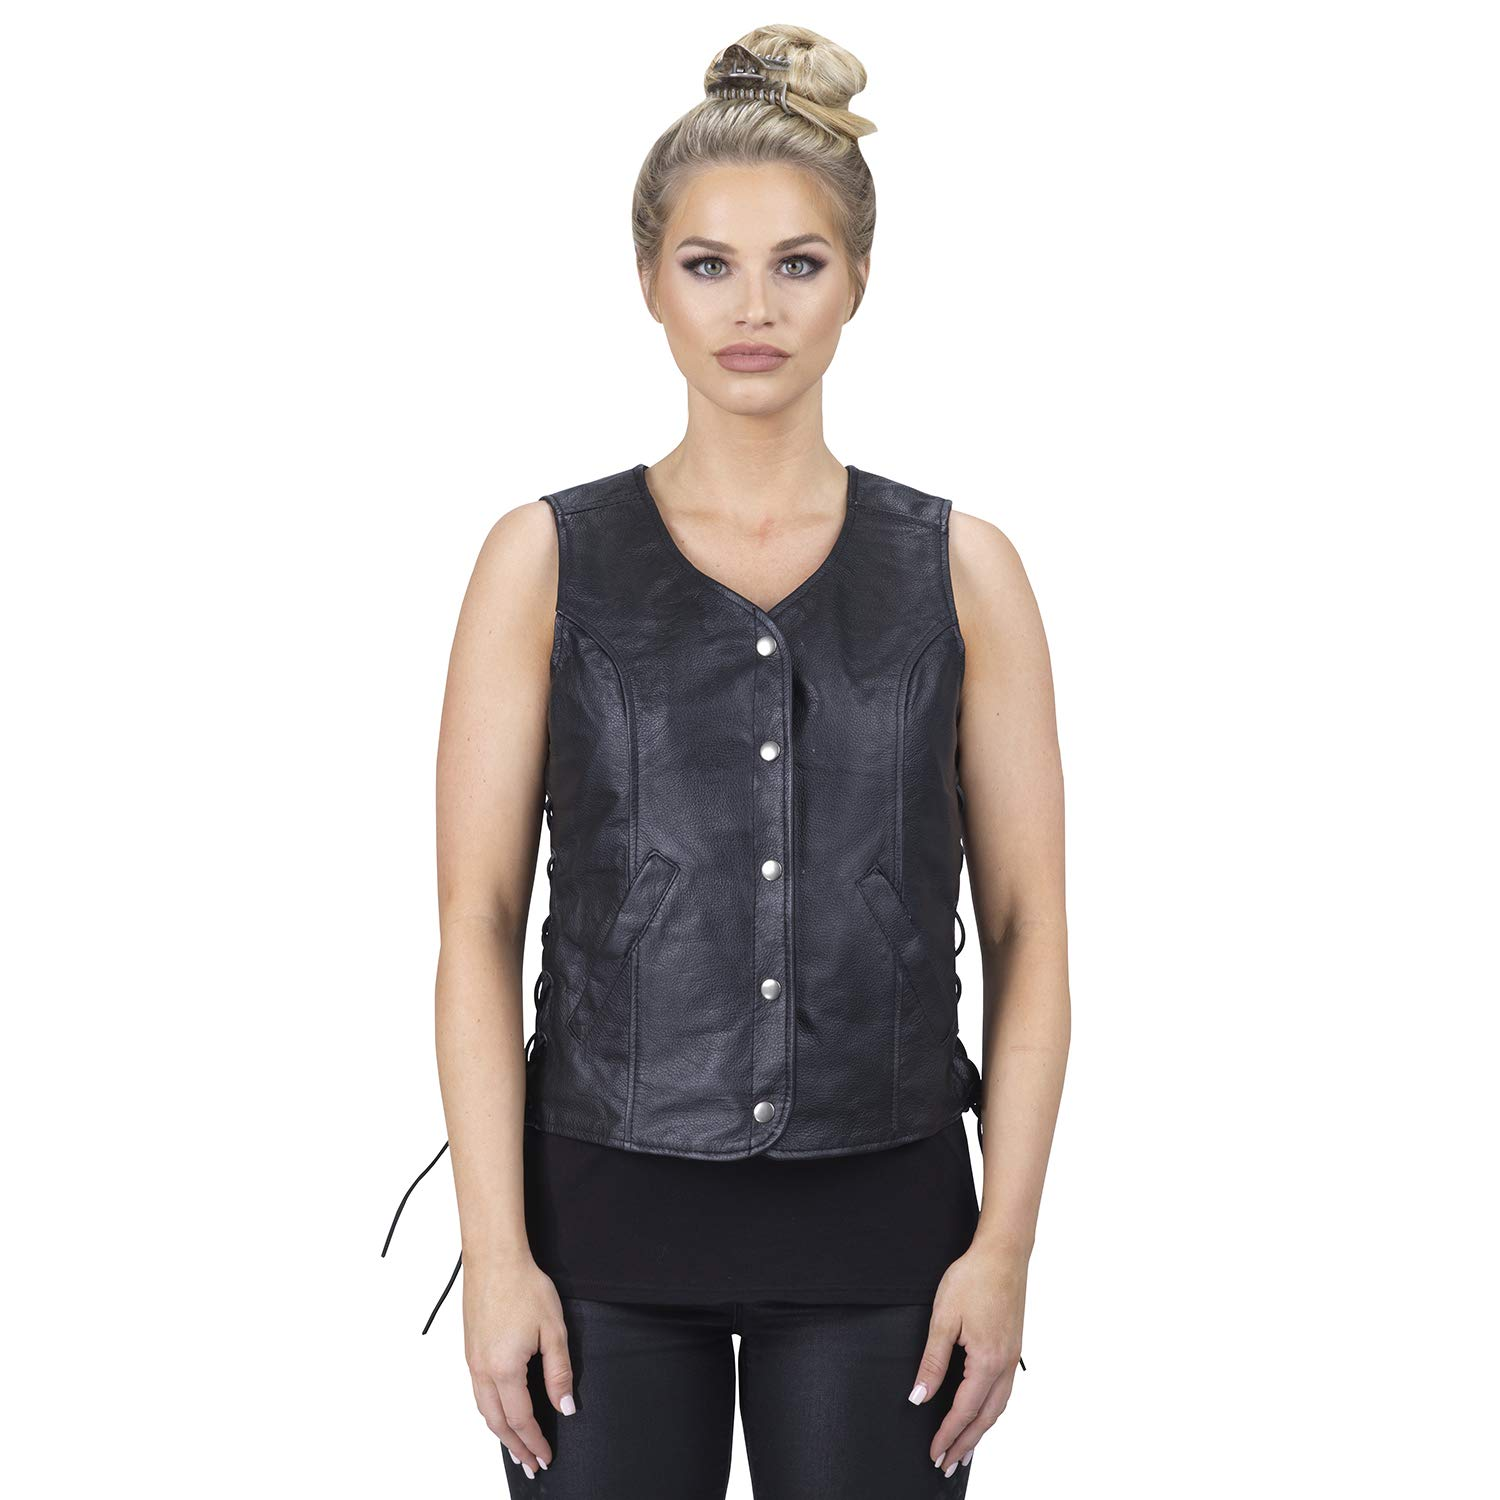 Viking Cycle Rowdy Leather Motorcycle Vest for Women (Small)